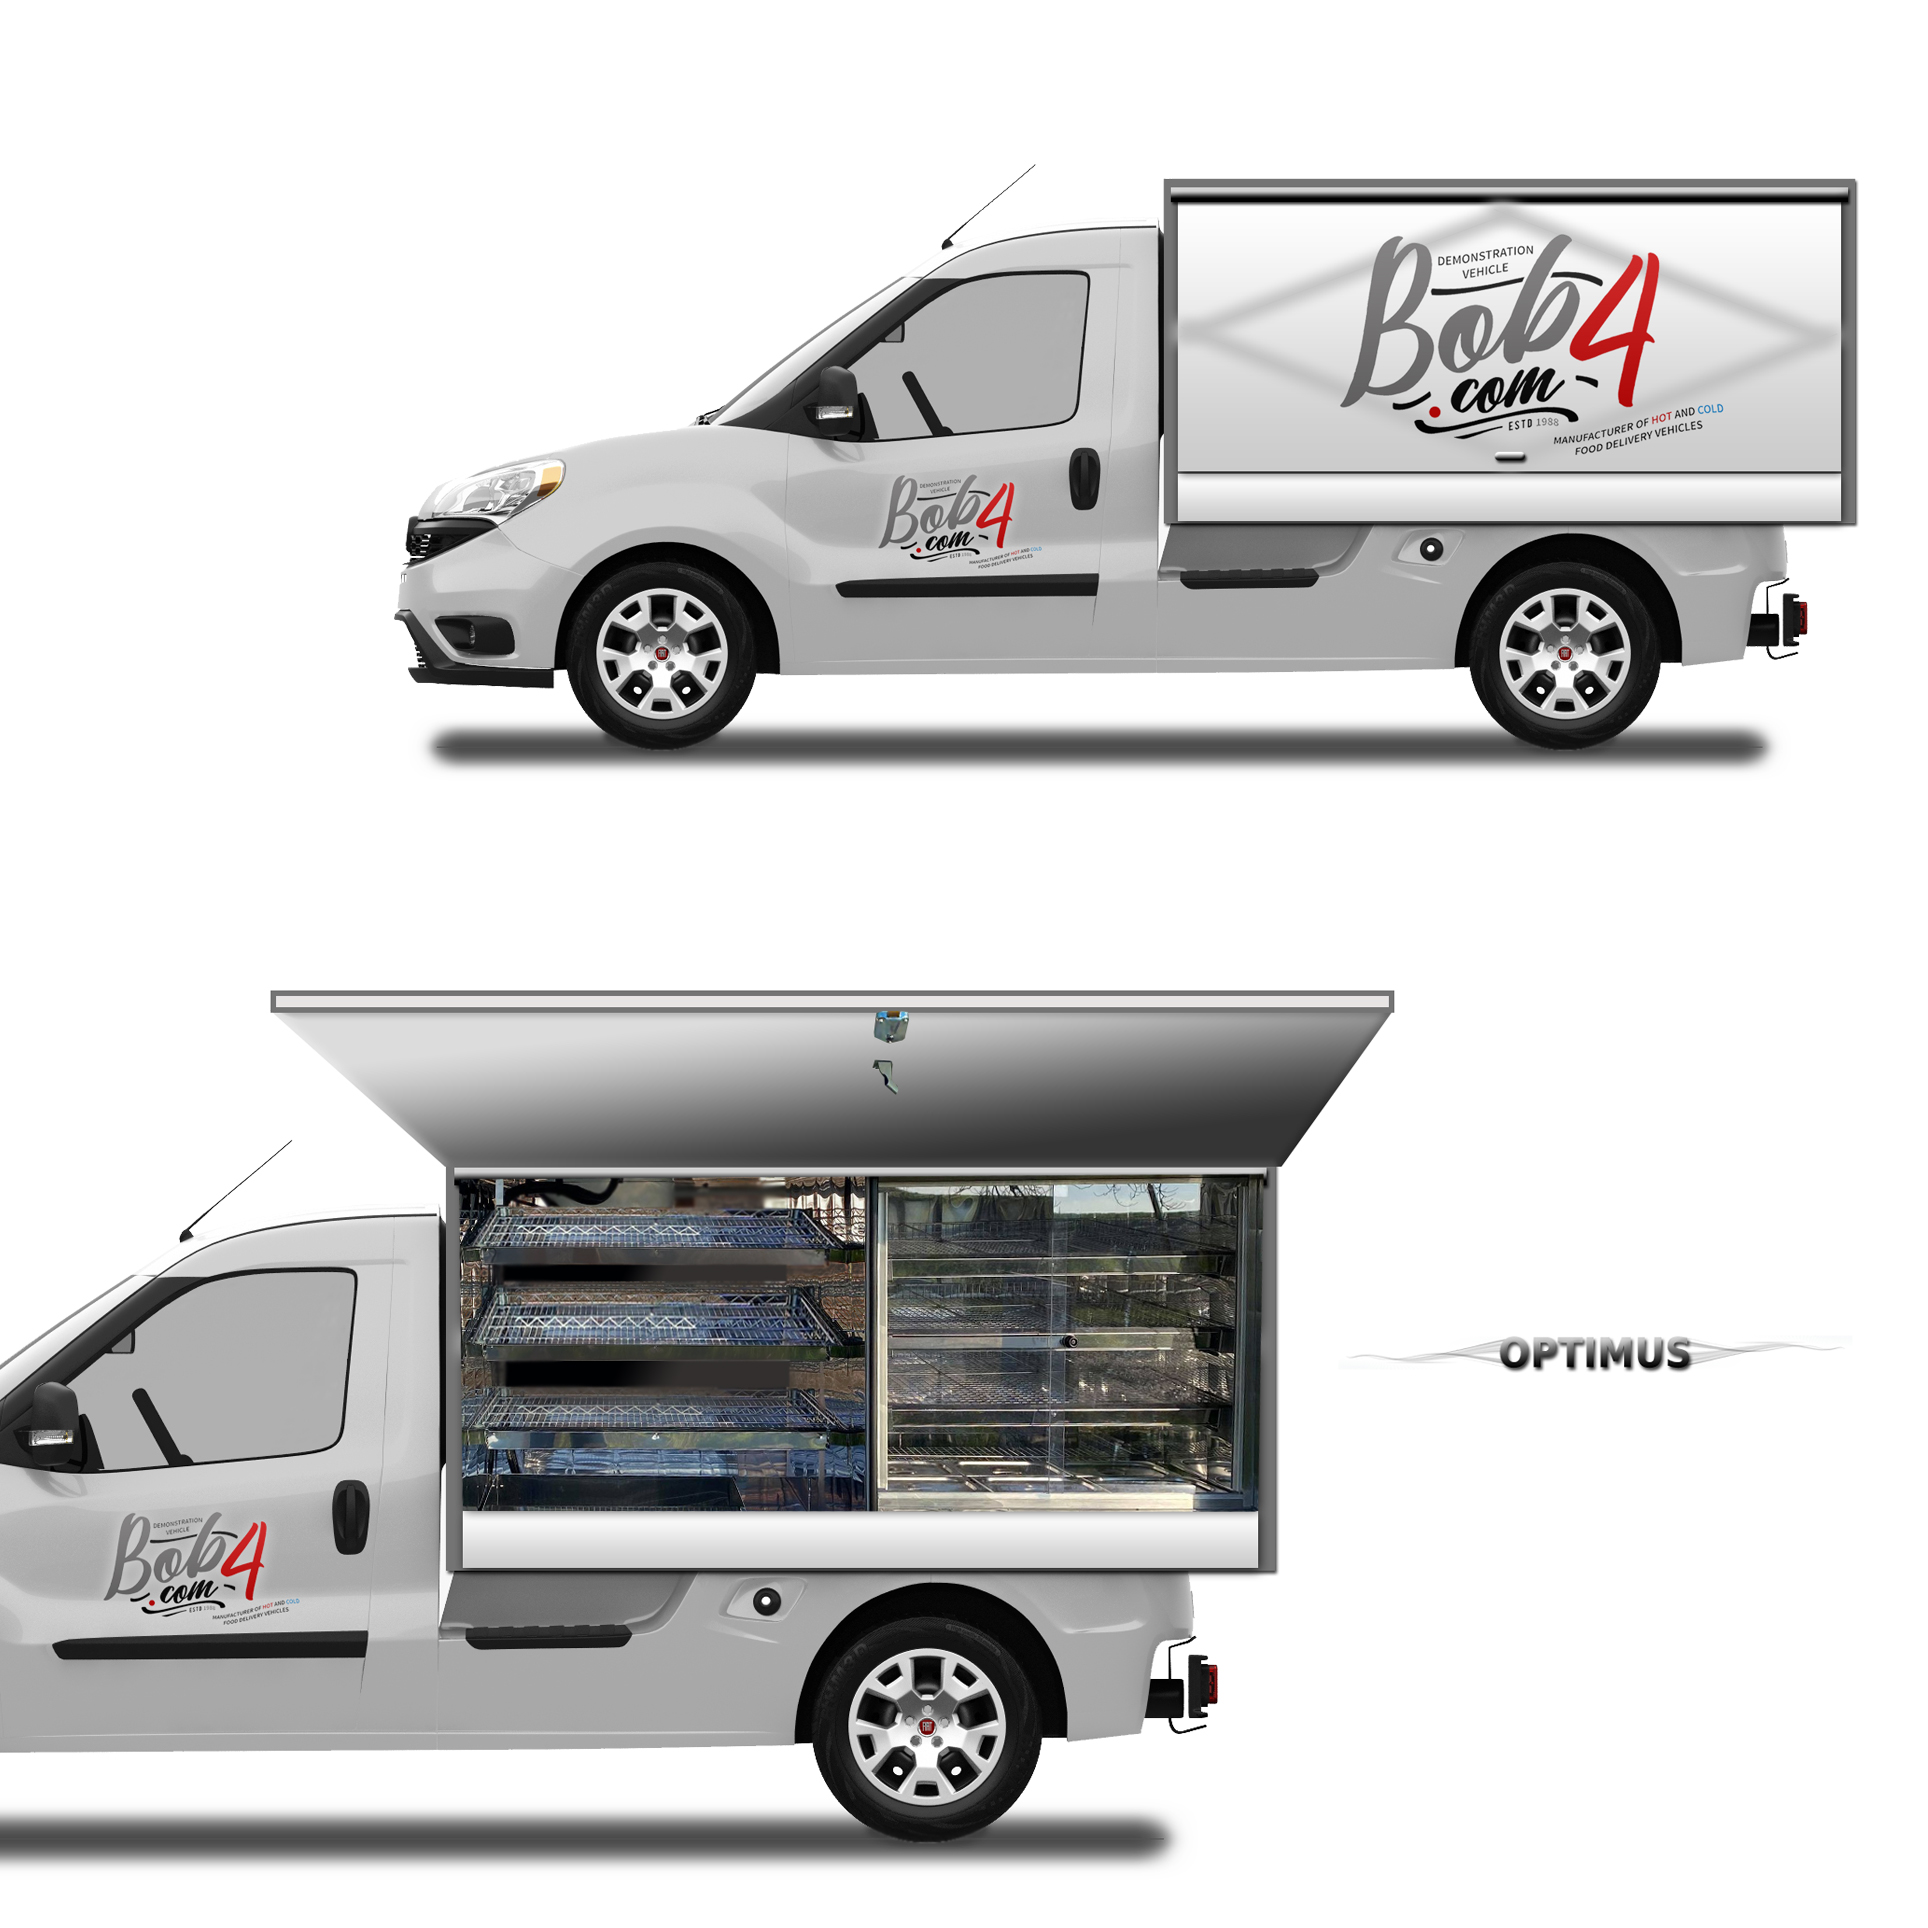 The Snaxi Primo Maxi - Hot and Cold Food Delivery Truck